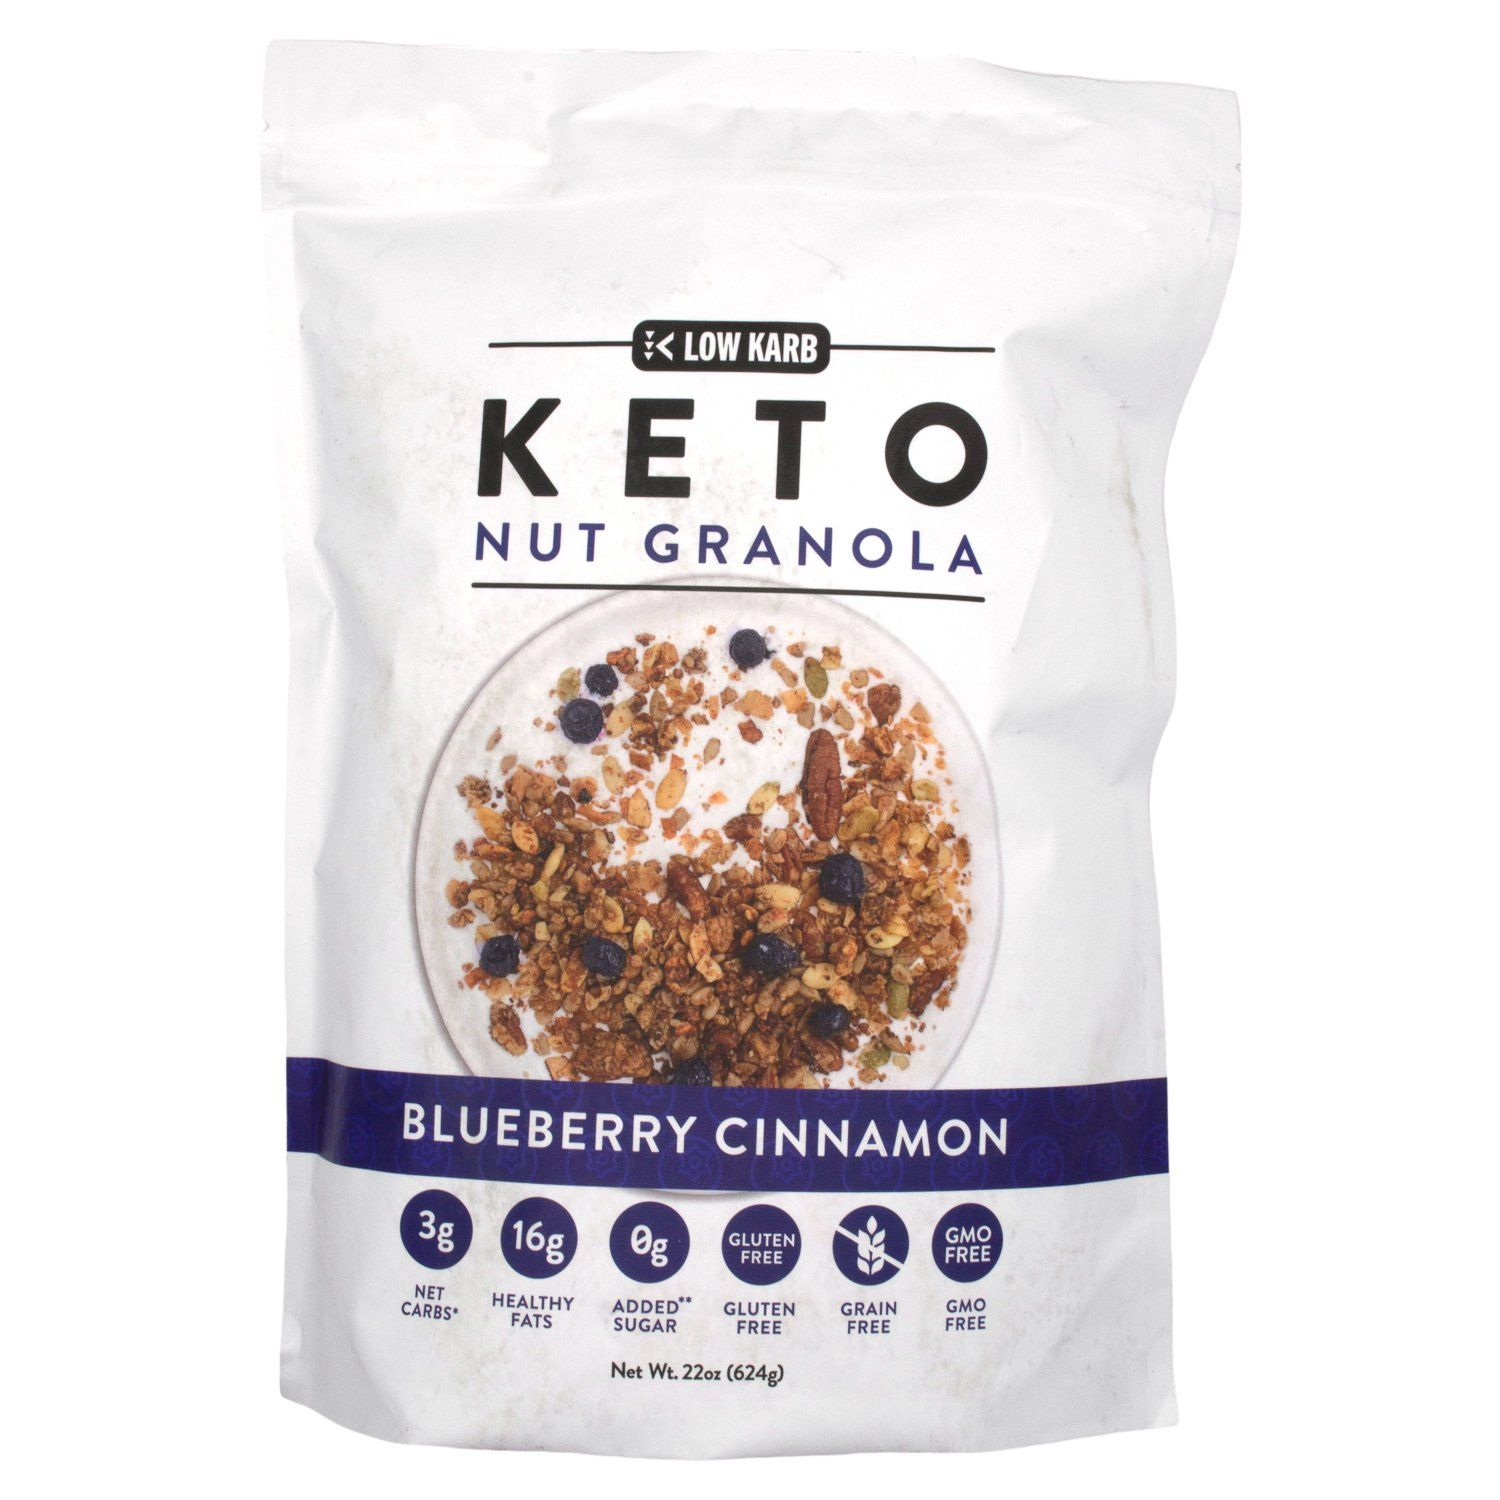 Low Karb Keto Nut Granola Low Karb Blueberry Cinnamon 22 Ounce